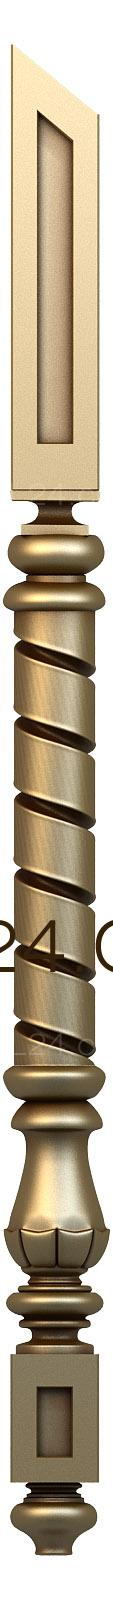 Pillar (ST_0016) - 3D model for CNC